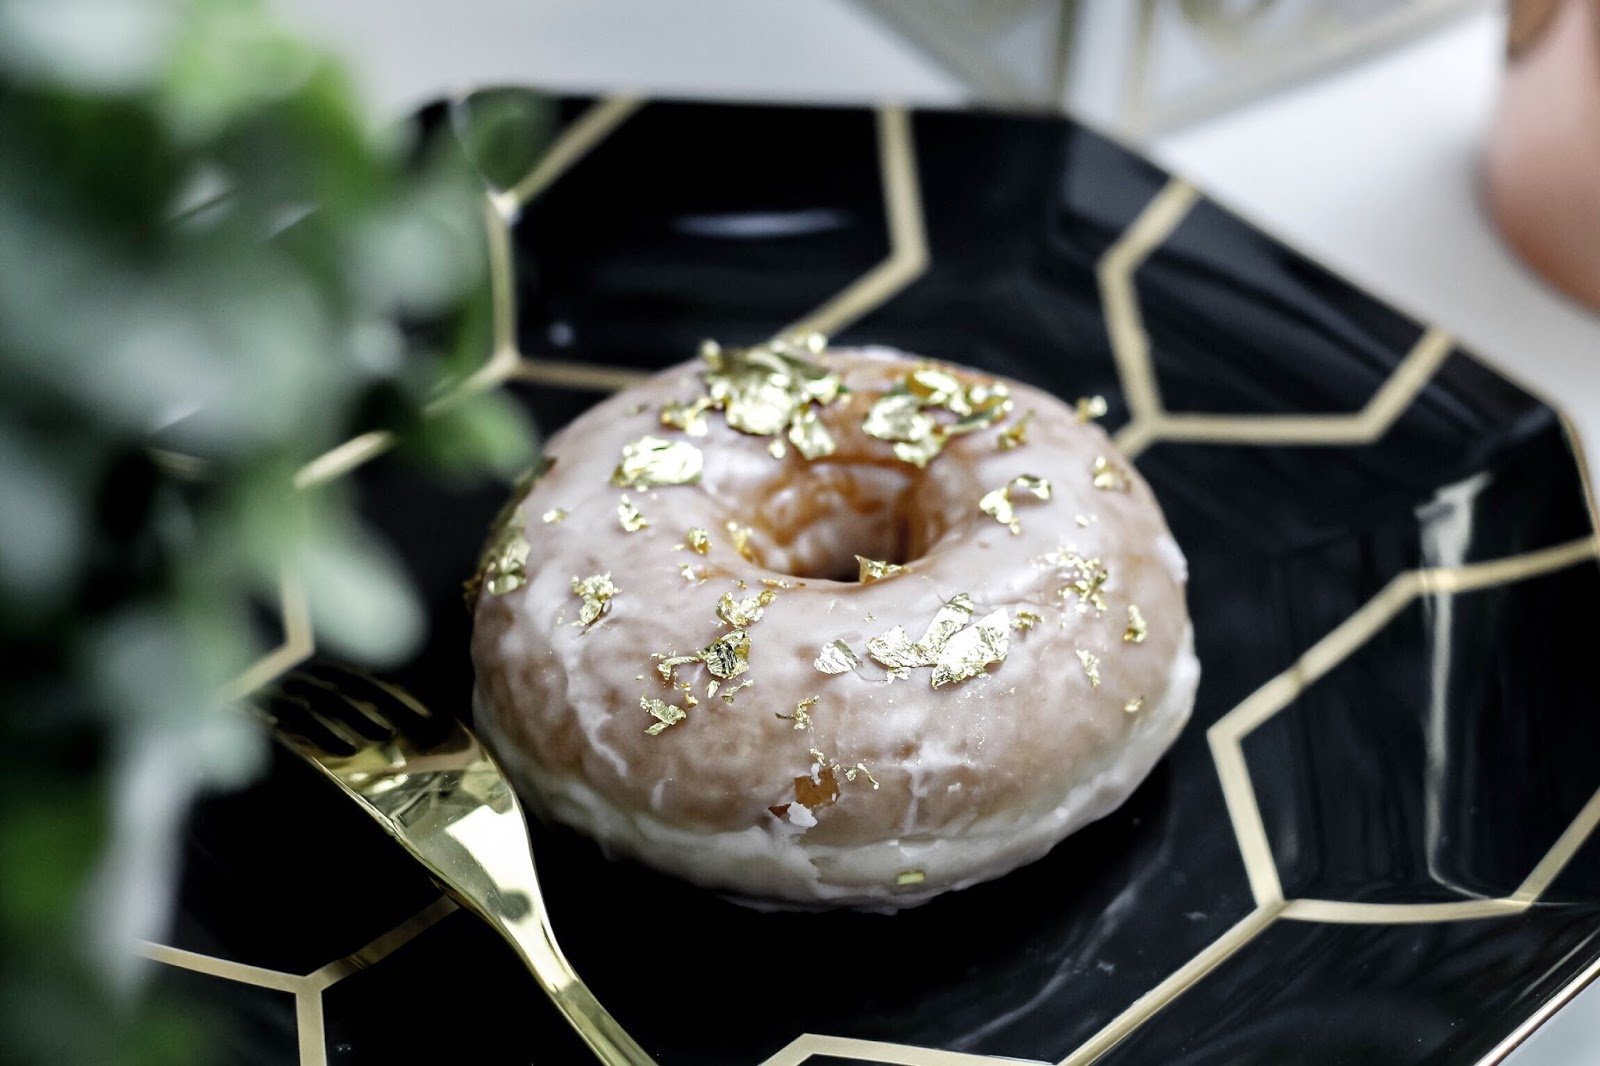 Doughnut Covered in Gold Leaf